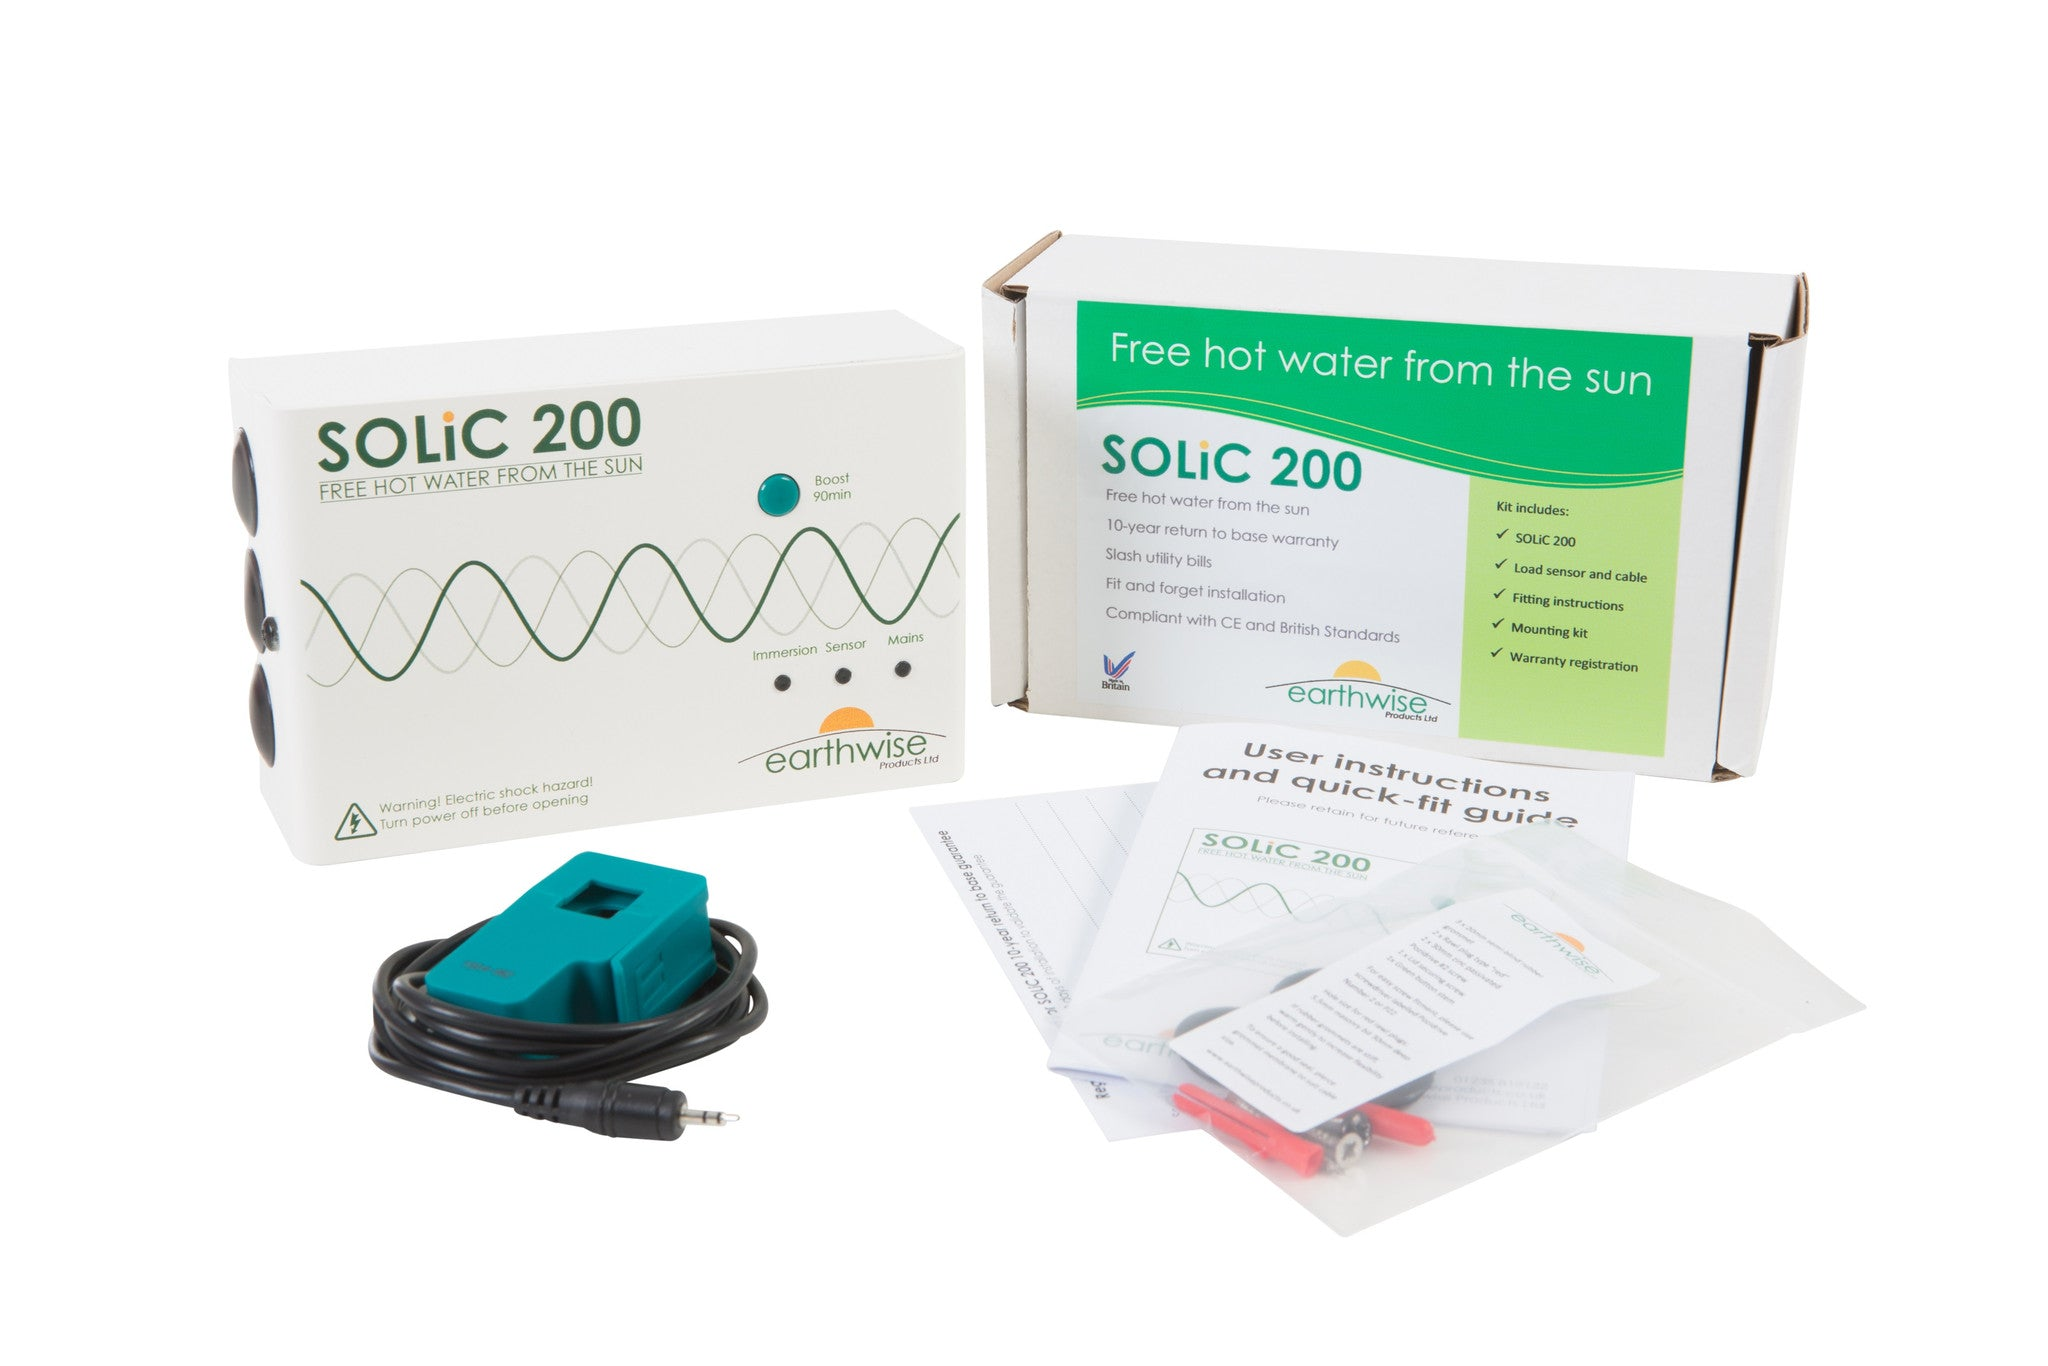 SOLiC_complete_pack?v=1466531704 solic 200 solar immersion controller ecoharmony solic 200 wiring diagram at gsmx.co